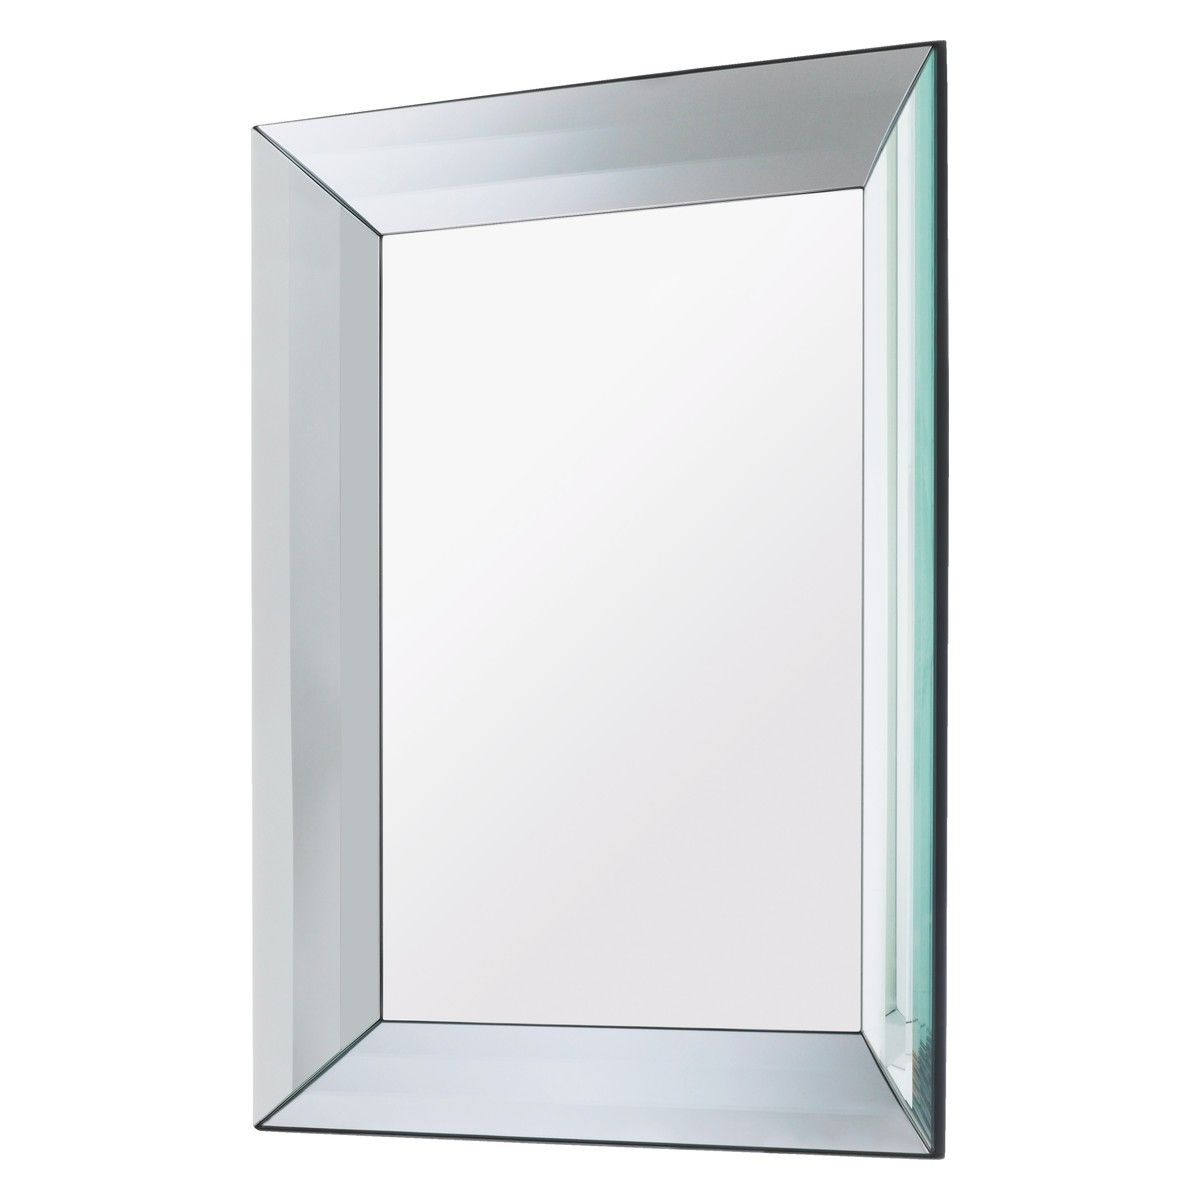 2020 Bevelled Wall Mirrors With Regard To Luella 60 X 80cm Rectangular Bevelled Wall Mirror (View 11 of 20)